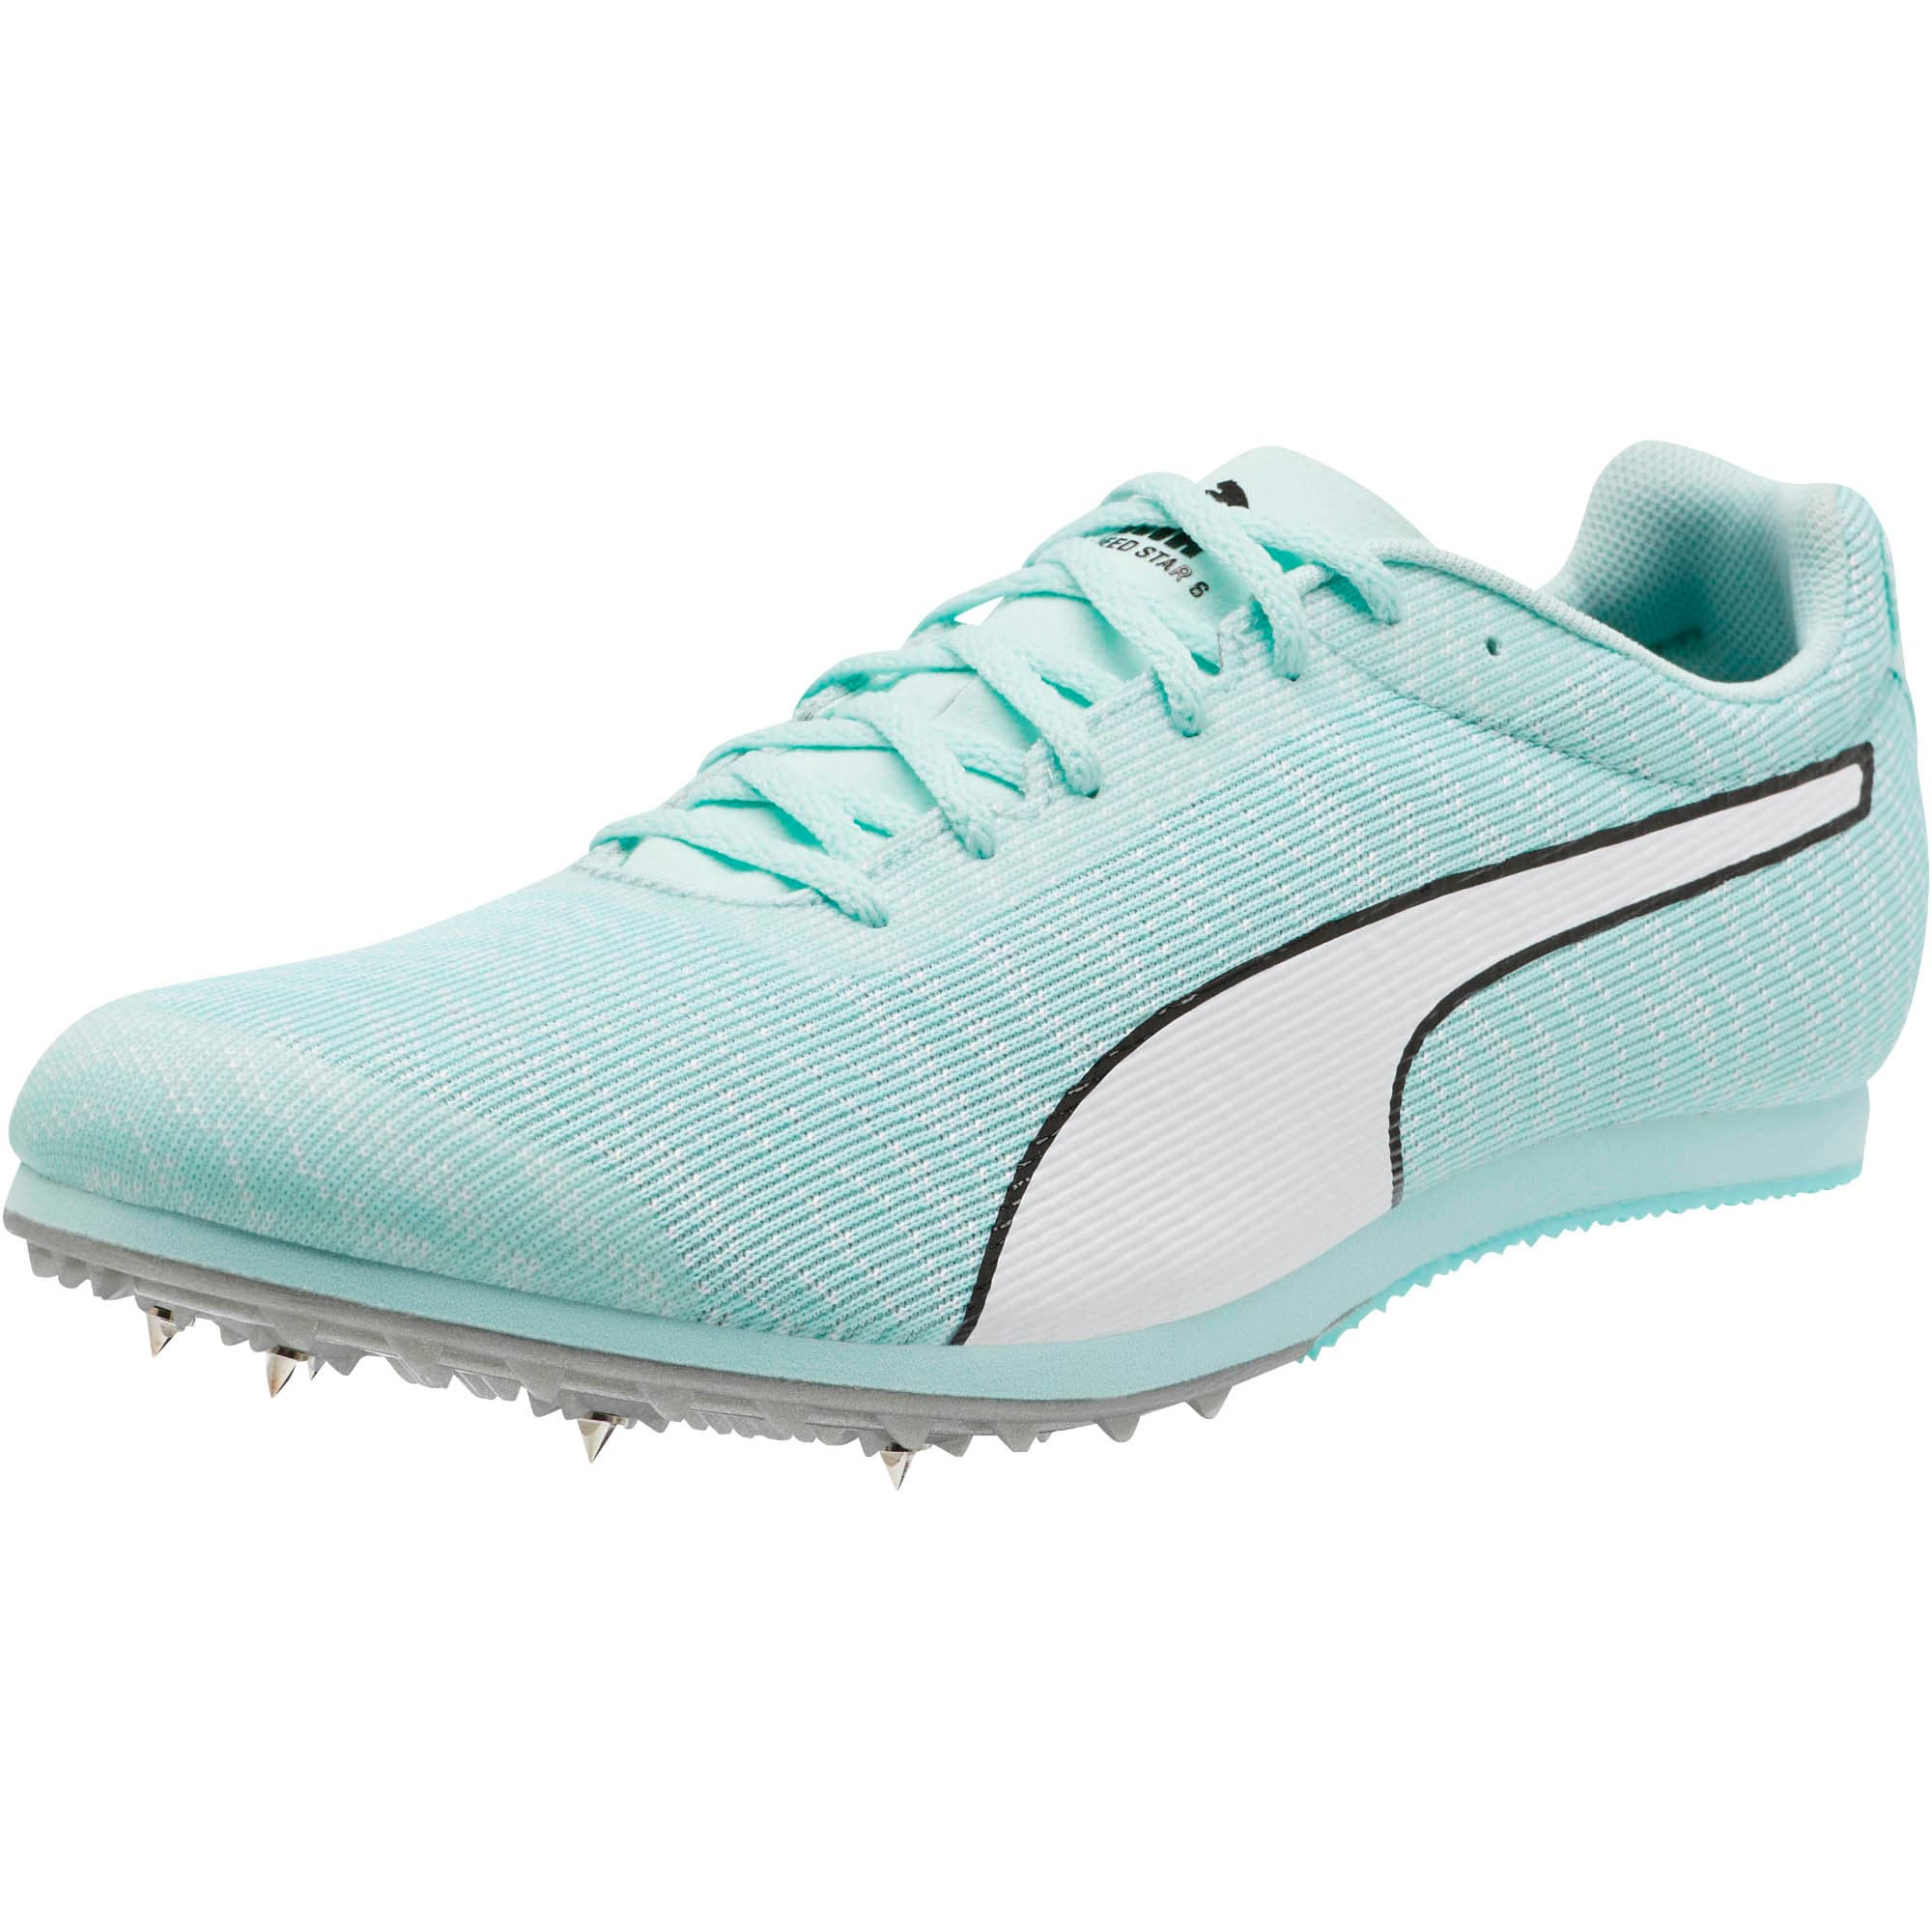 Thumbnail 1 of evoSPEED Star 6 Men's Track Spikes, Fair Aqua-Puma White, medium